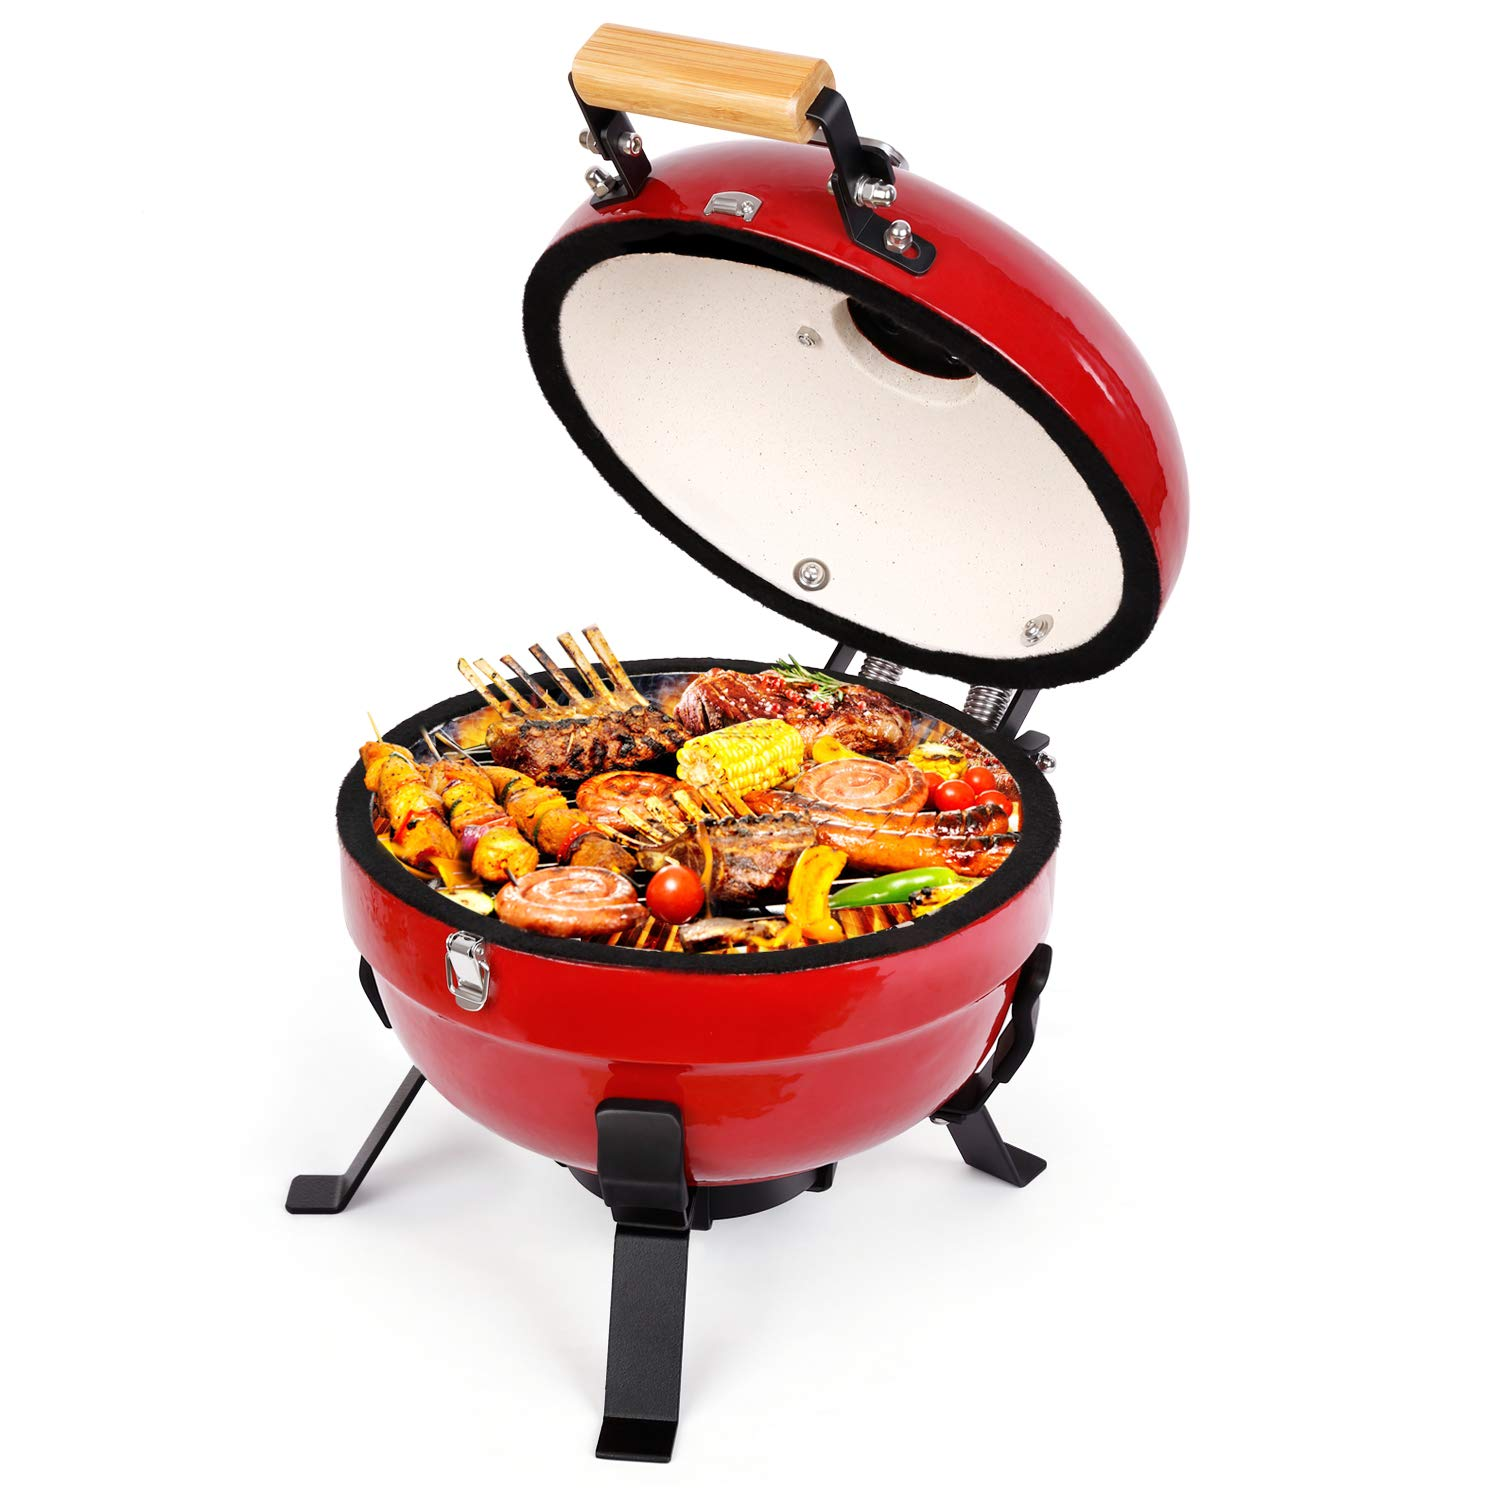 TUSY Ceramic Griller Charcoal Grill Advanced Portable Red, 12-Inch Foldable Barbecue Grilling Charcoal Oven with Digital Thermometer.